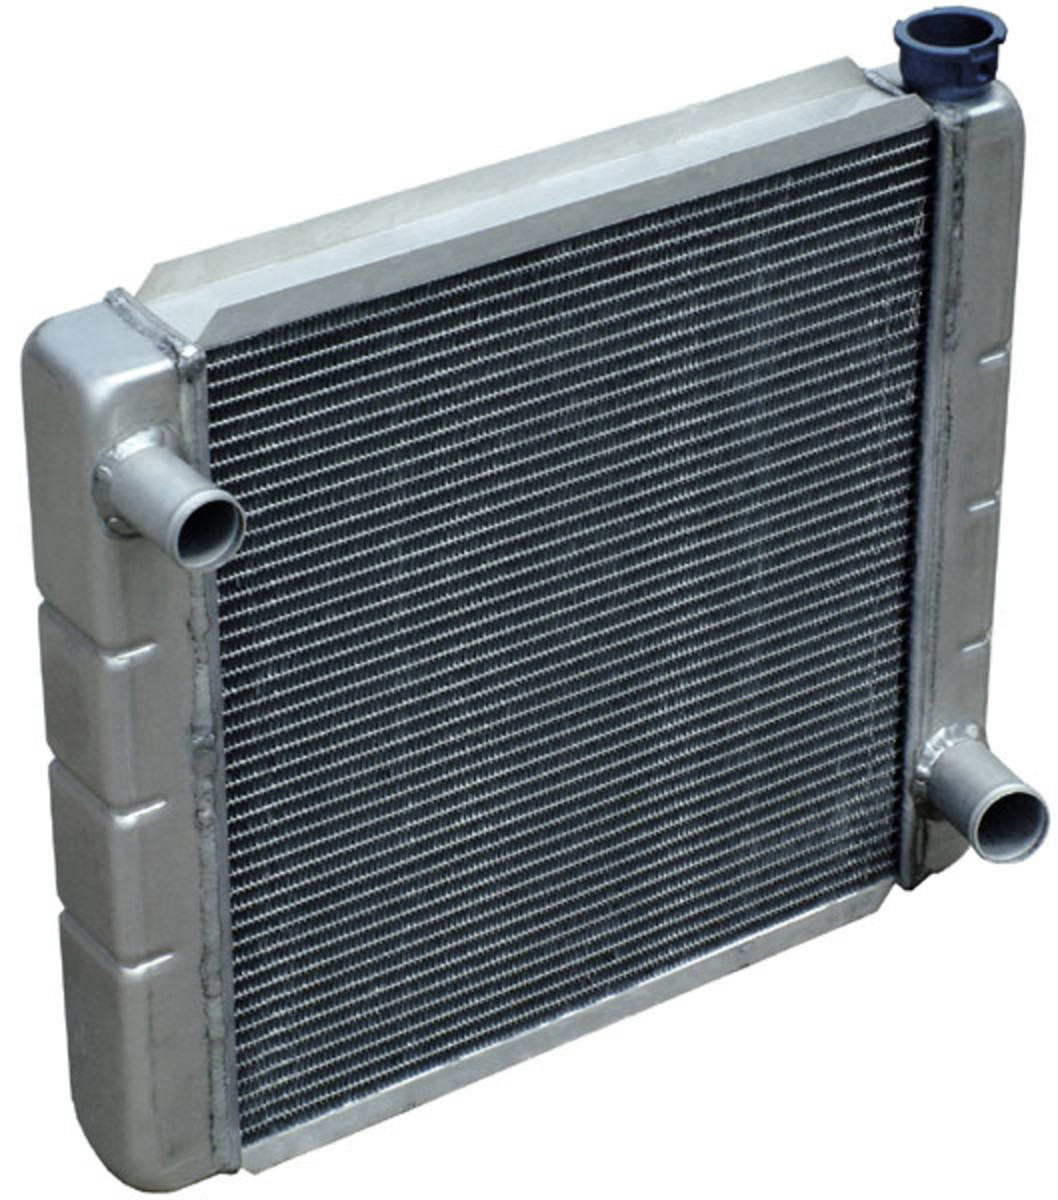 Learn to check your radiator for potential problems.